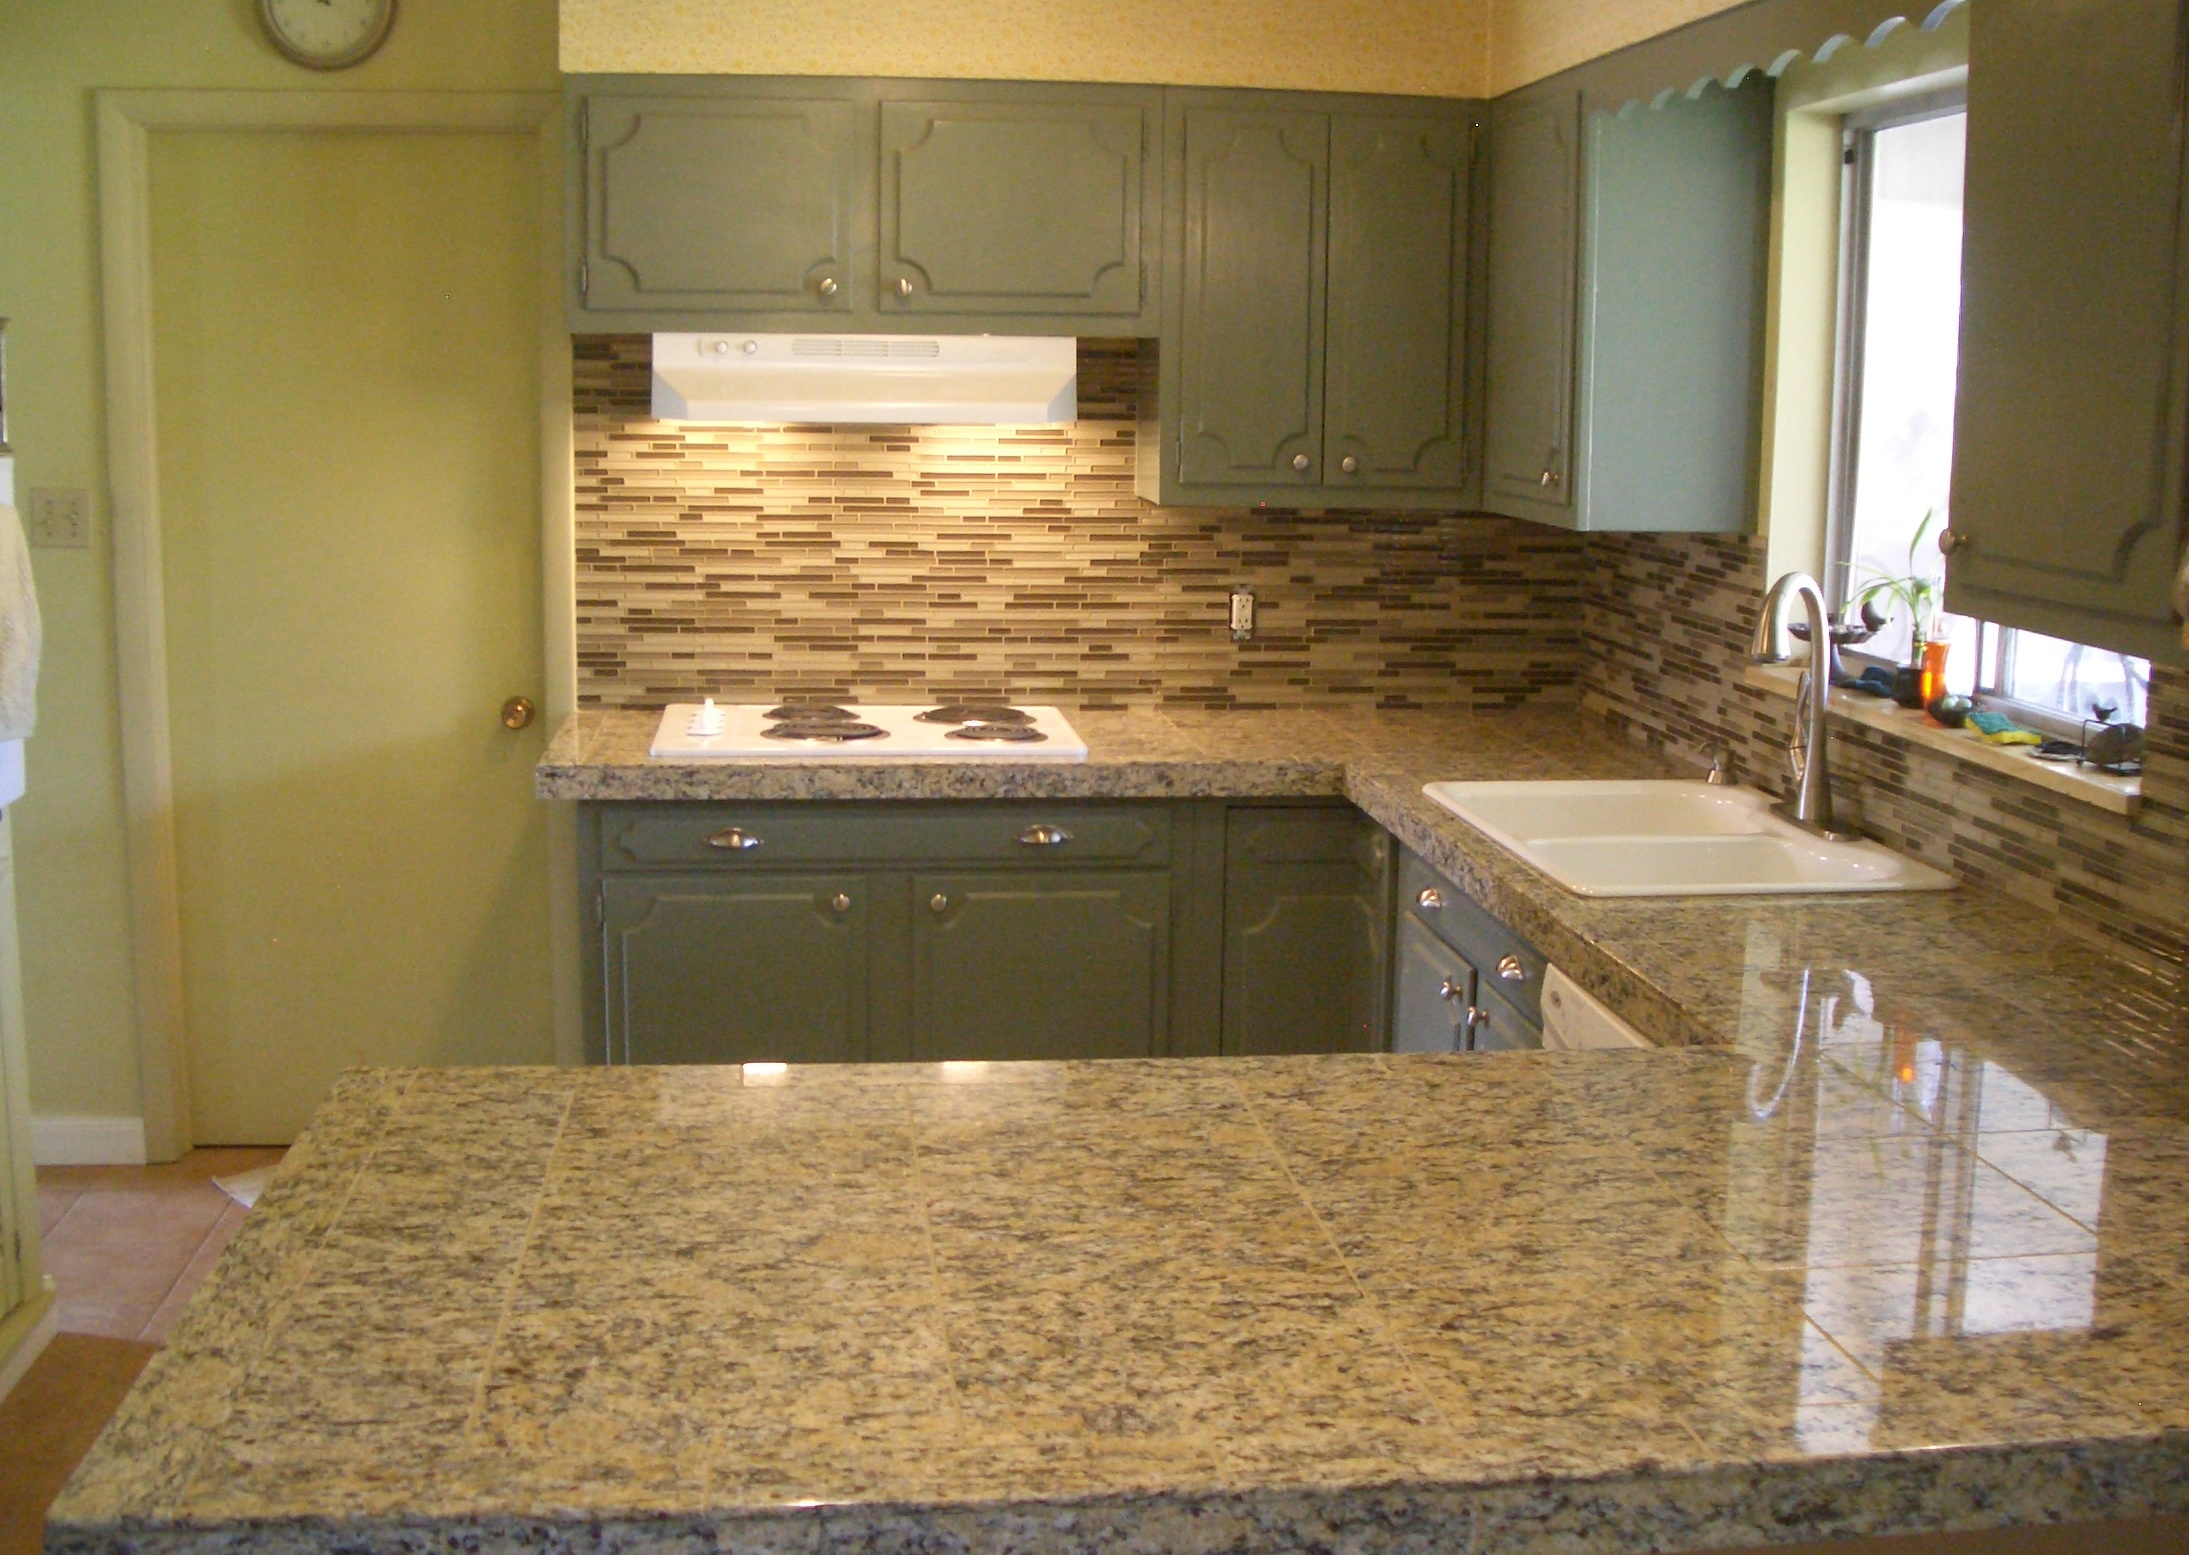 Glass Tile Kitchen Backsplash Special – Only $899!